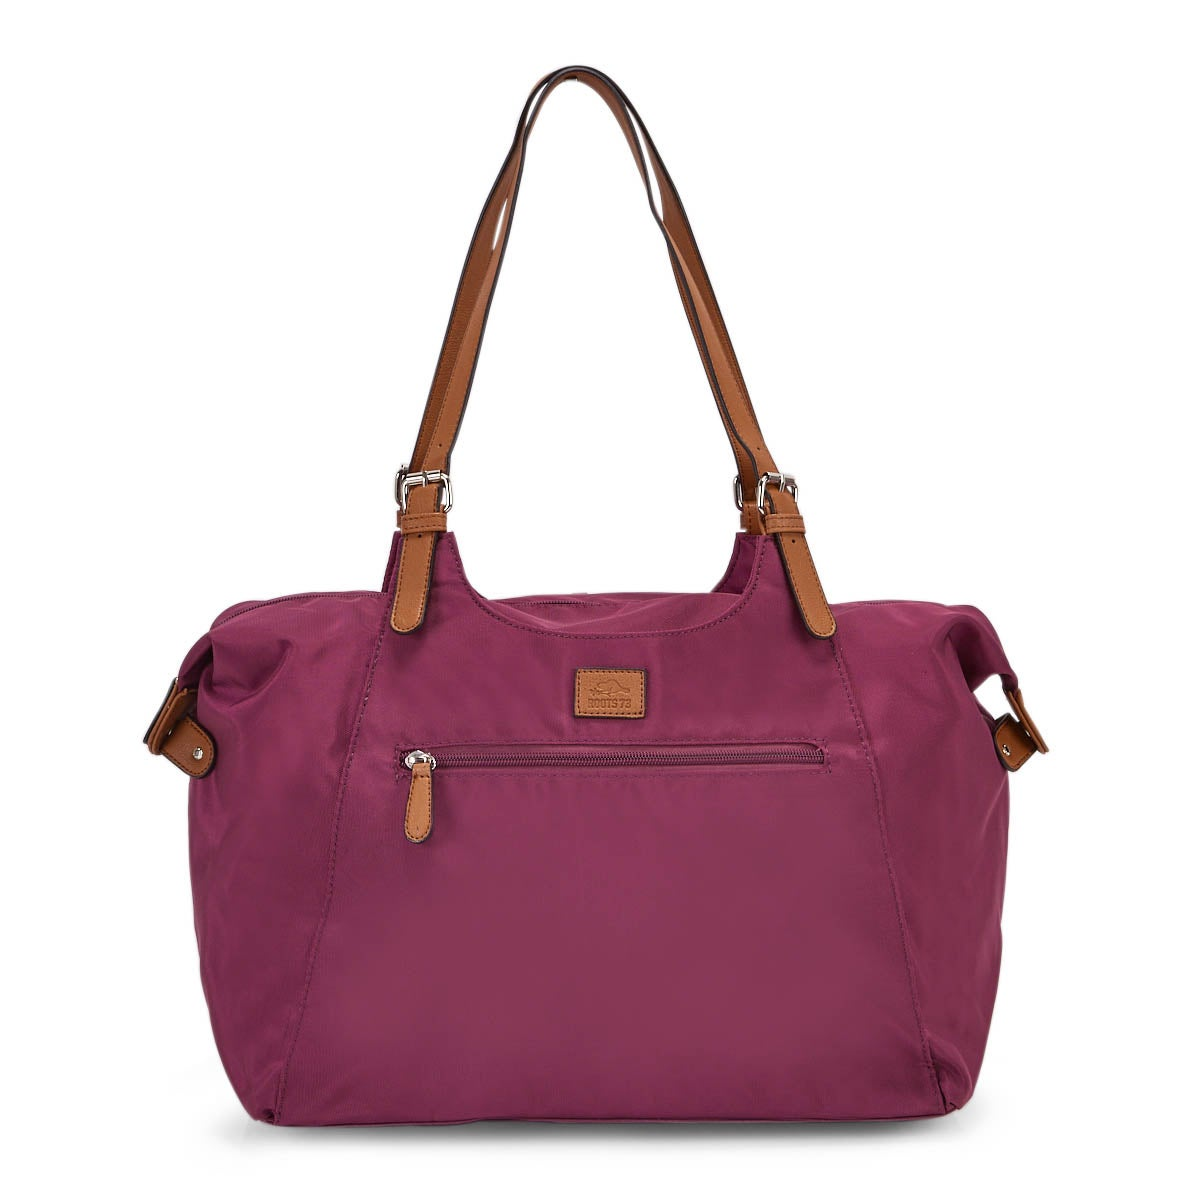 Lds Roots73 magenta nylon large tote bag